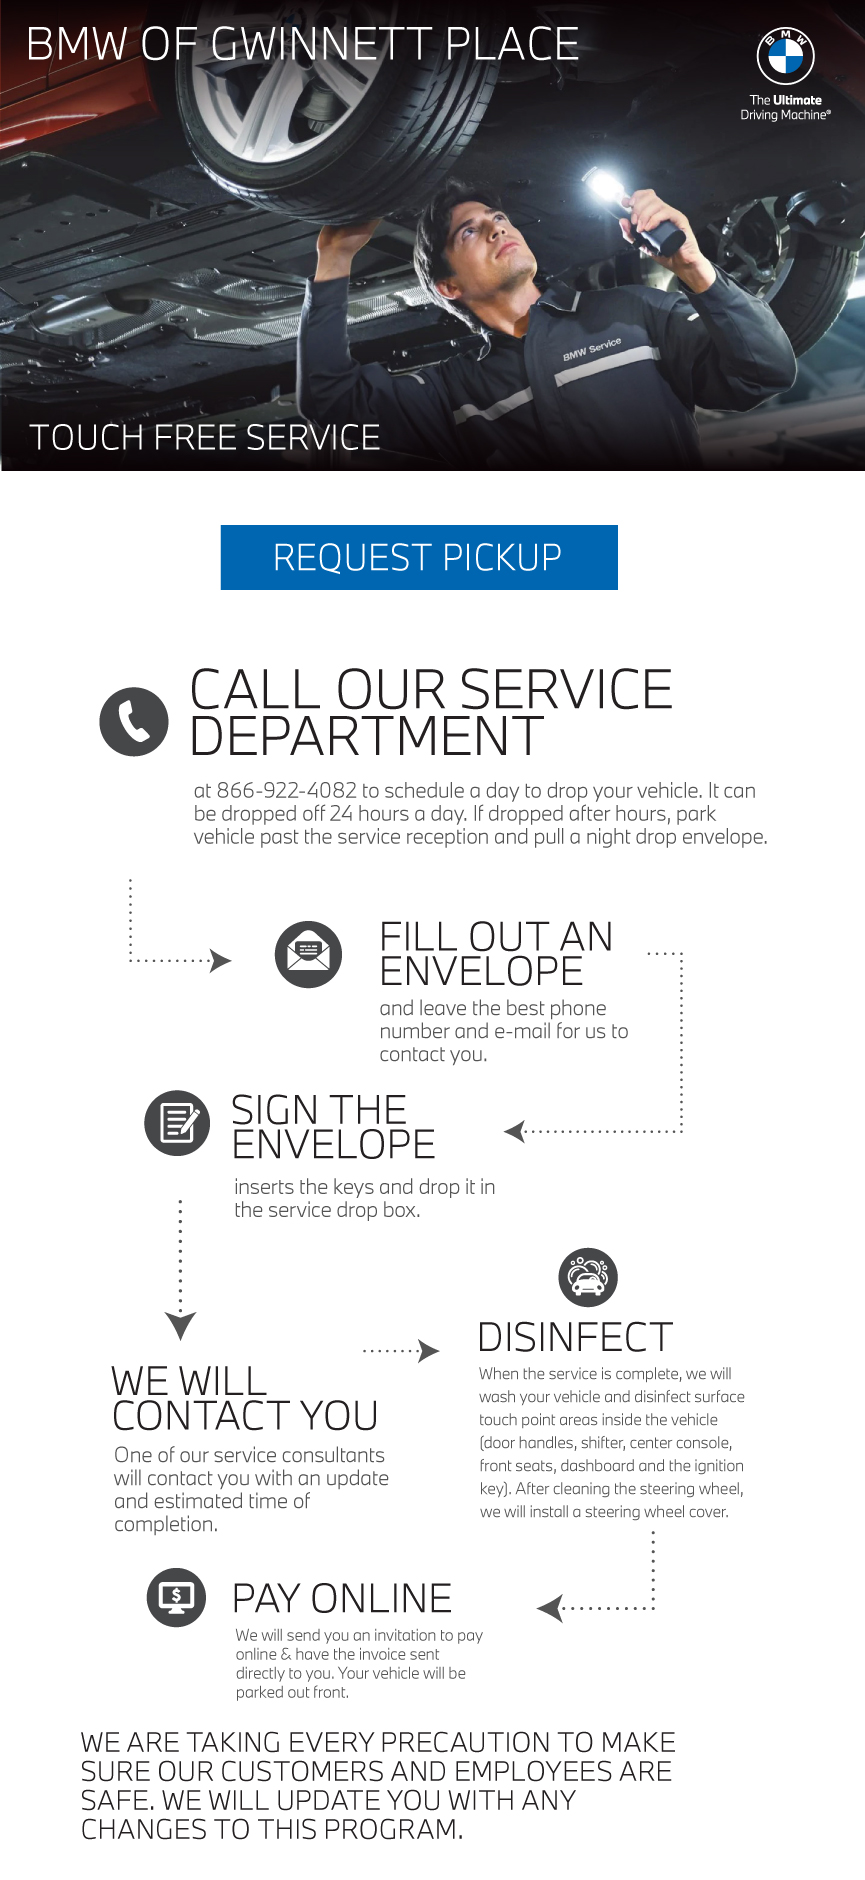 Introducing Touch Free Service at BMW of Gwinnett Place. Call our Service Department to schedule a day to drop your vehicle. It can be dropped off 24 hours a day. If dropped after hours, park vehicle in front of our service doors and pull a night drop envelope. FILL OUT AN ENVELOPE and leave the best phone number and e-mail for us to contact you. SIGN THE ENVELOPE insert the keys and drop it in the service drop box. WE WILL CONTACT YOU One of our service consultants will contact you with an update and estimated time of completion. DISINFECT When the service is complete, we will wash your vehicle and disinfect all touch point areas inside the vehicle (door handles, shifter, center console, front seats, dashboard and the ignition key). After cleaning the steering wheel, we will install a steering wheel cover. PAY ONLINE We will send you an invitation to pay online & have the invoice sent directly to you. Your vehicle will be parked out front. We are taking every precaution to make sure our customers and employees are safe. We will update you with any changes to this program.